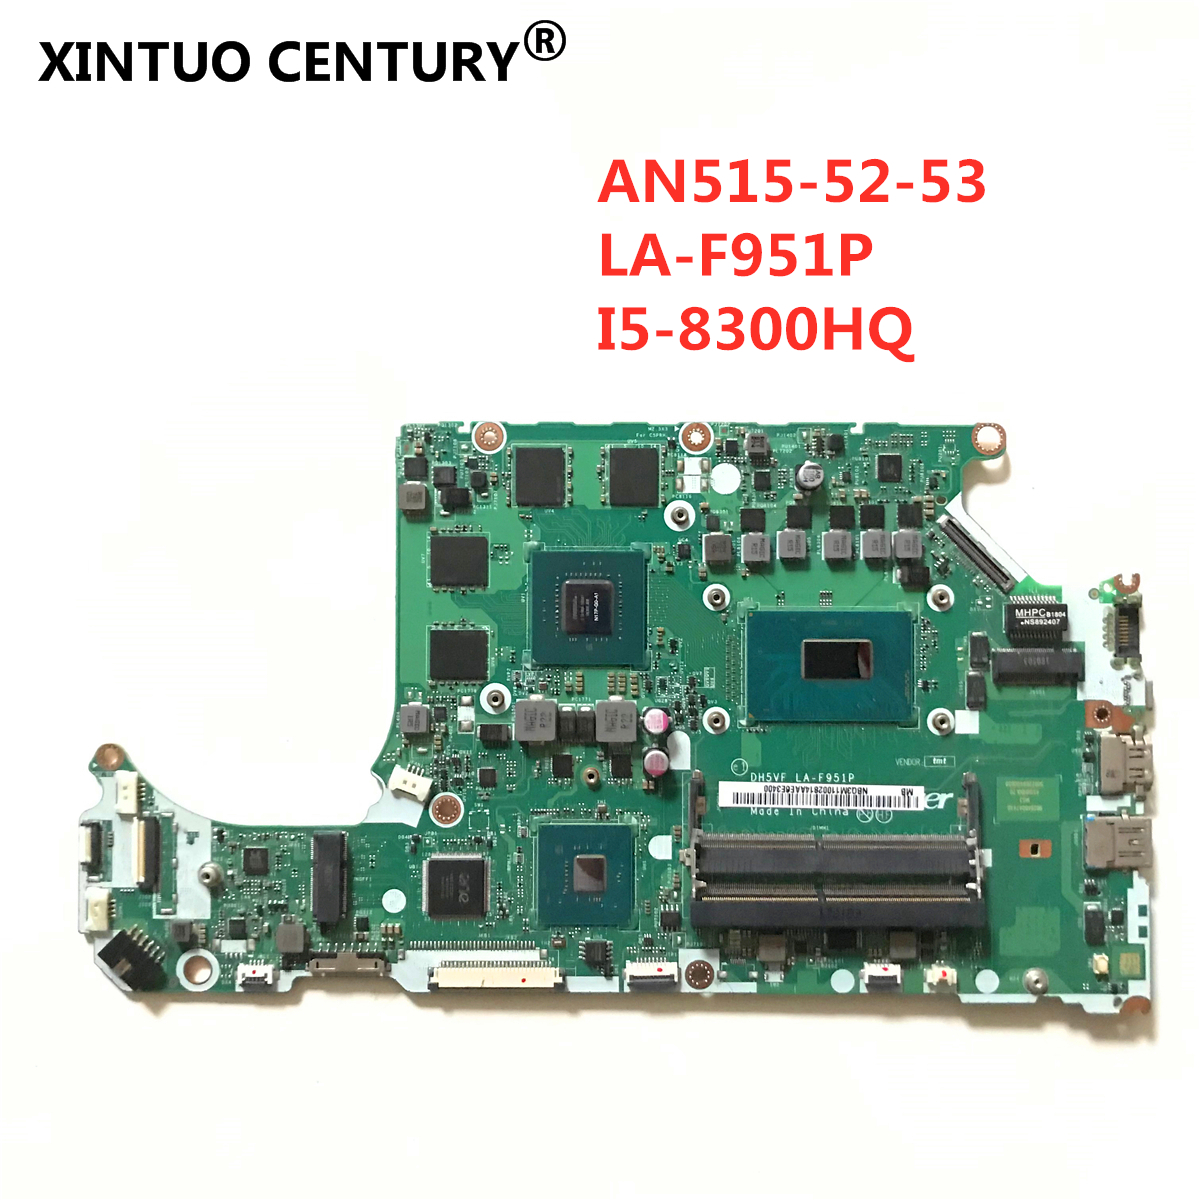 DH5VF LA-F951P For ACER Nitro AN515-52 Laptop motherboard NB.Q3L11.001 NBQ3L11001 With SR3Z0 I5-8300HQ CPU <font><b>GTX1050Ti</b></font> <font><b>4GB</b></font> image